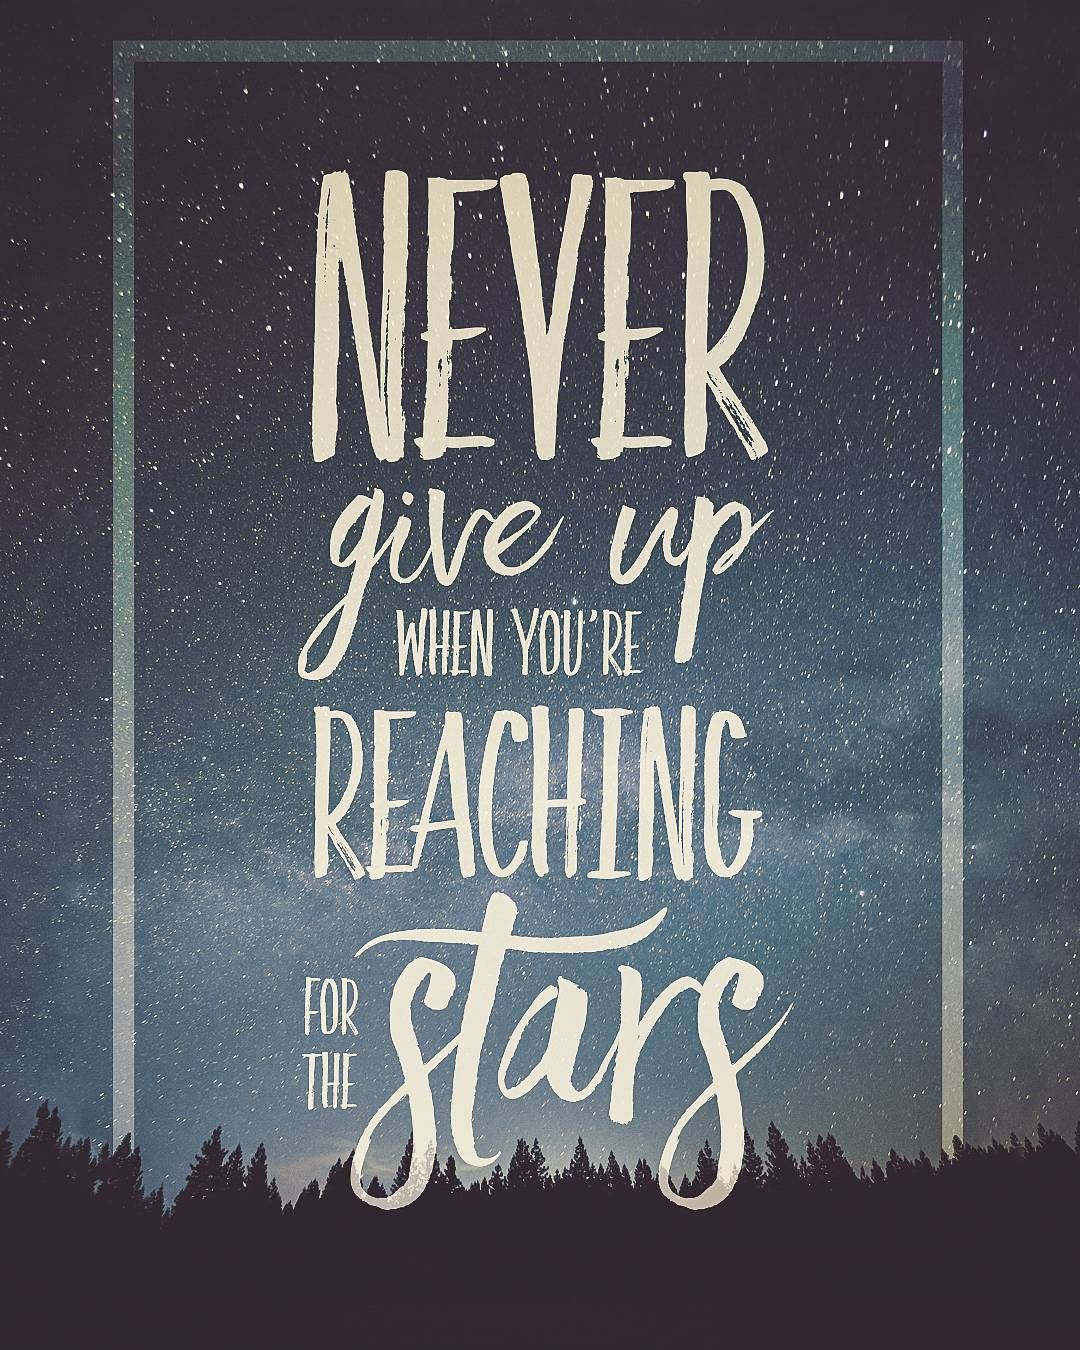 #typography #poster #motivation #quote #design #art #artistic #graphic #graphicdesign #motivationalquotes #ambition #inspiration #inspire #stars #future #reach #power #motivate #dontgiveup #youcandoit #inspirationalquotes #inspiring #space